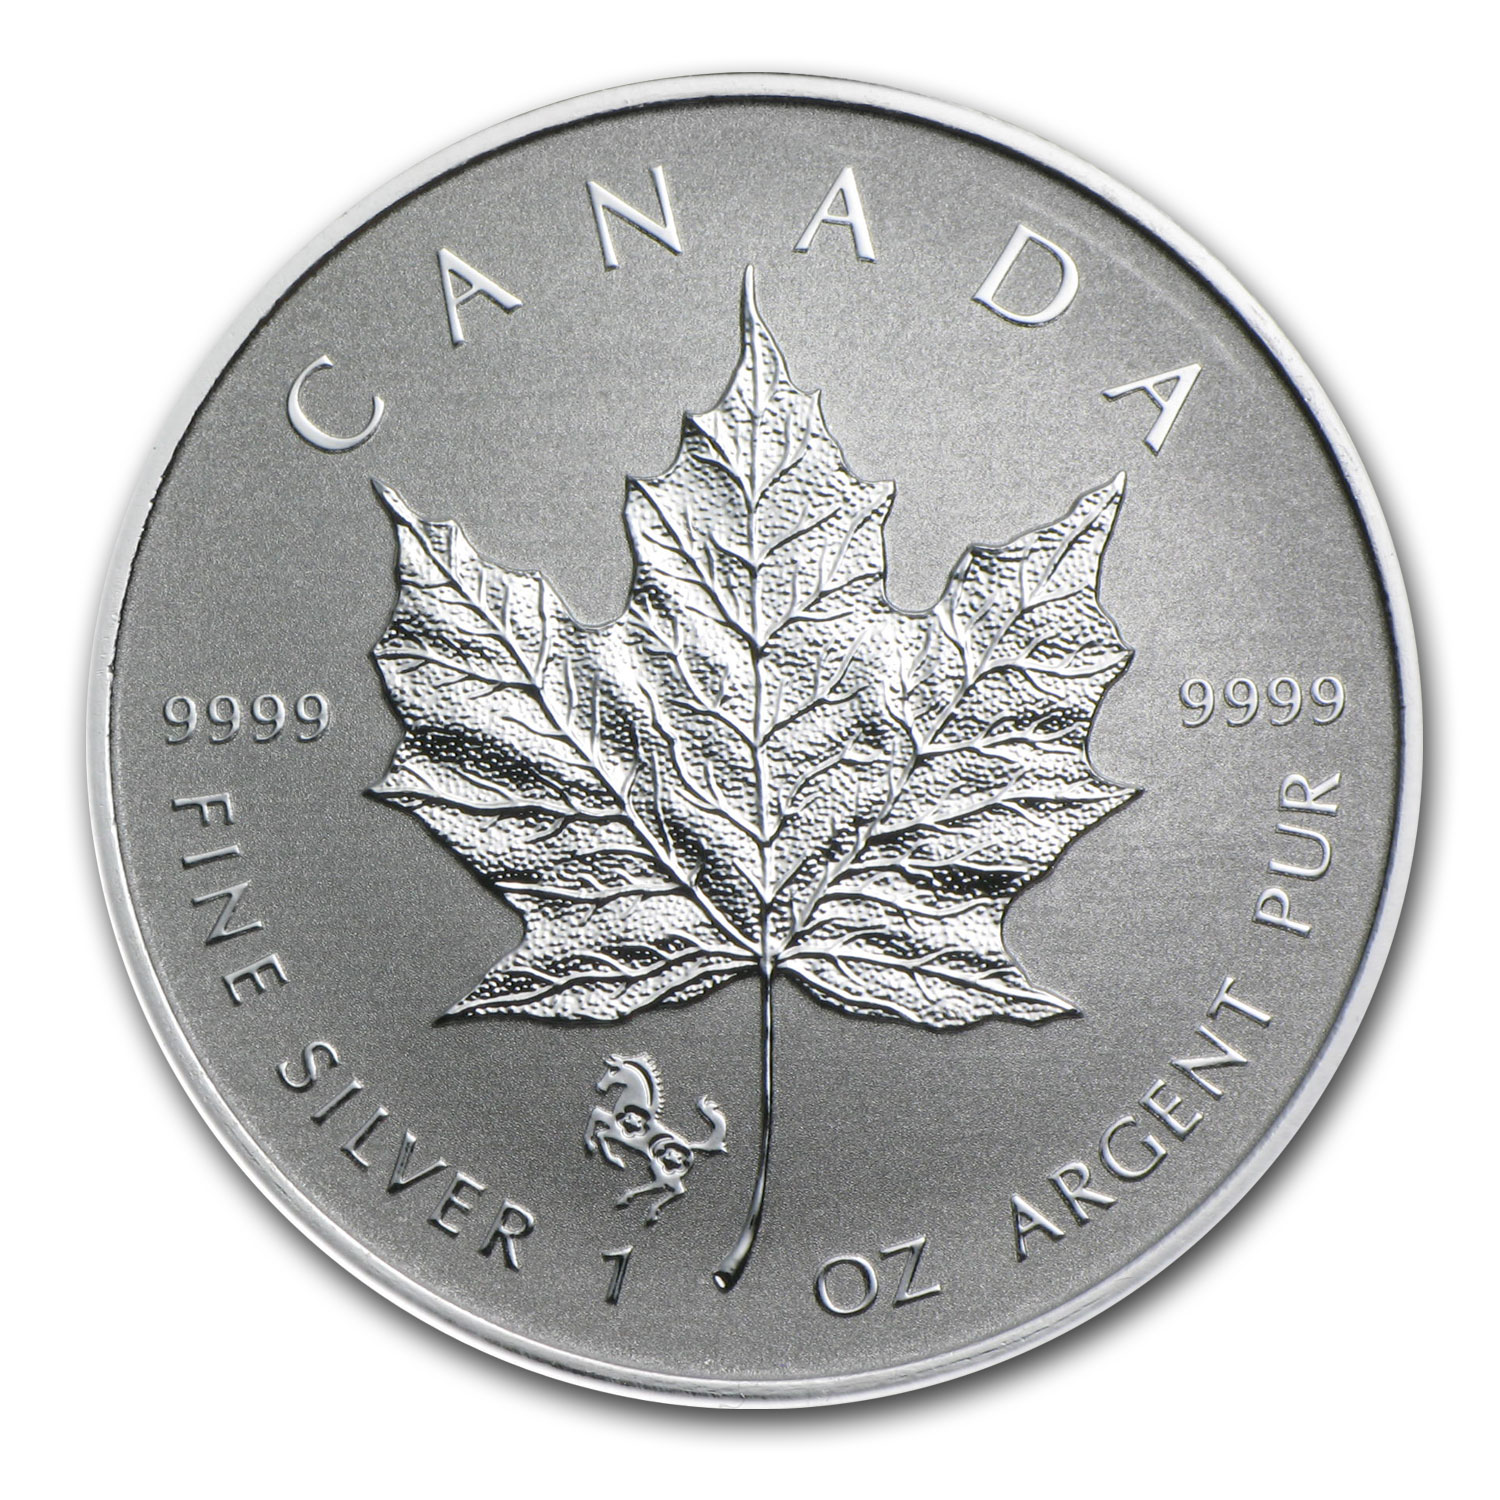 2014 Canada 1 oz Silver Maple Leaf Horse Privy